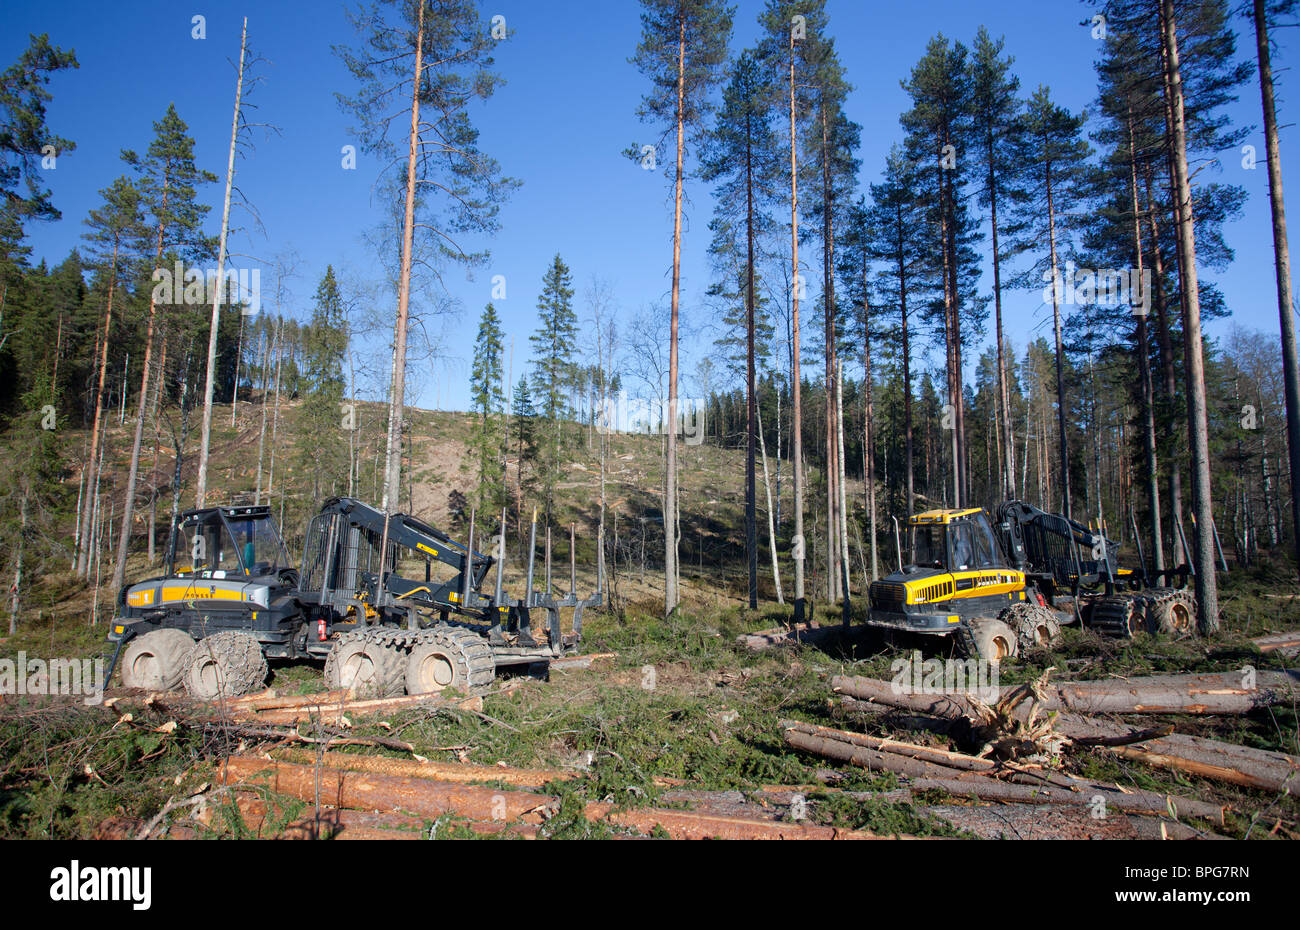 Ponsse Buffalo forest harvester and forwarders at clear-cutting area , Finland - Stock Image